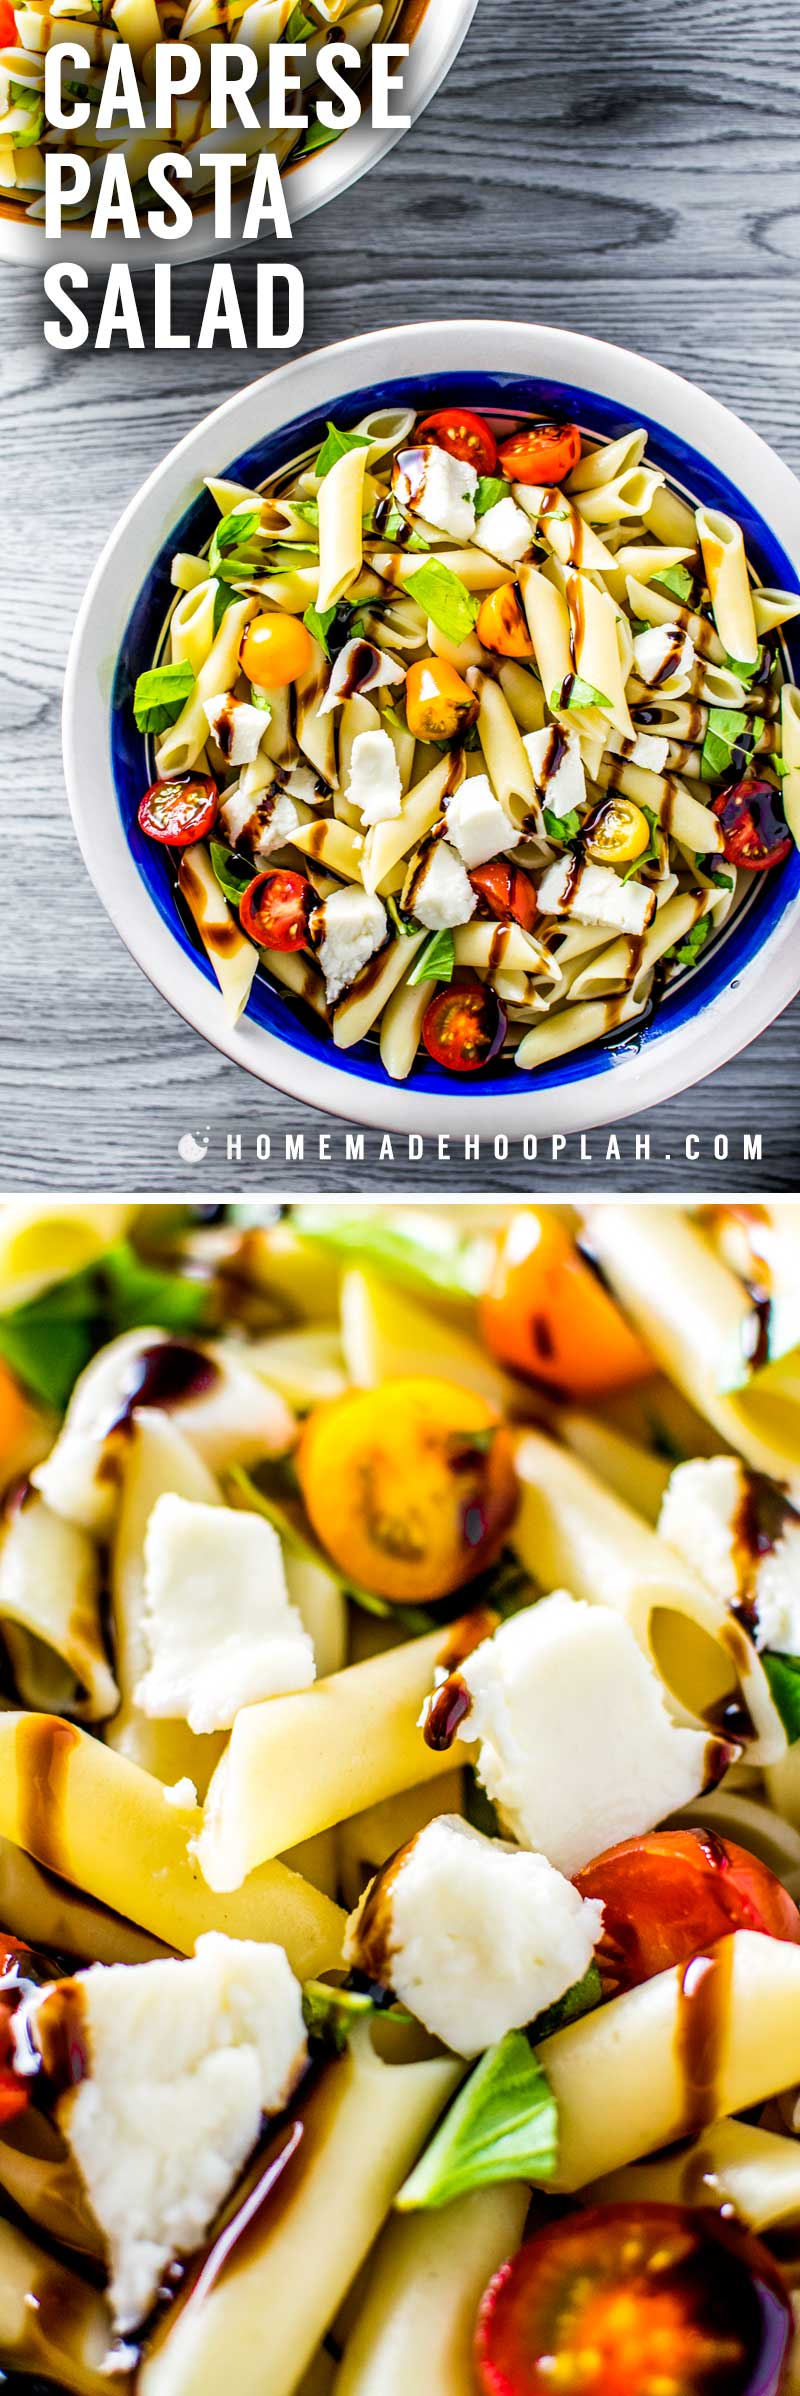 Caprese Pasta Salad! This caprese pasta salad is the ideal low-hassle side dish that still tastes gourmet. Homemade balsamic glaze (or store-bought!) is drizzled over sliced baby heirloom tomatoes, fresh chopped basil, bite-sized mozzarella, and a pasta of your choice. | HomemadeHooplah.com